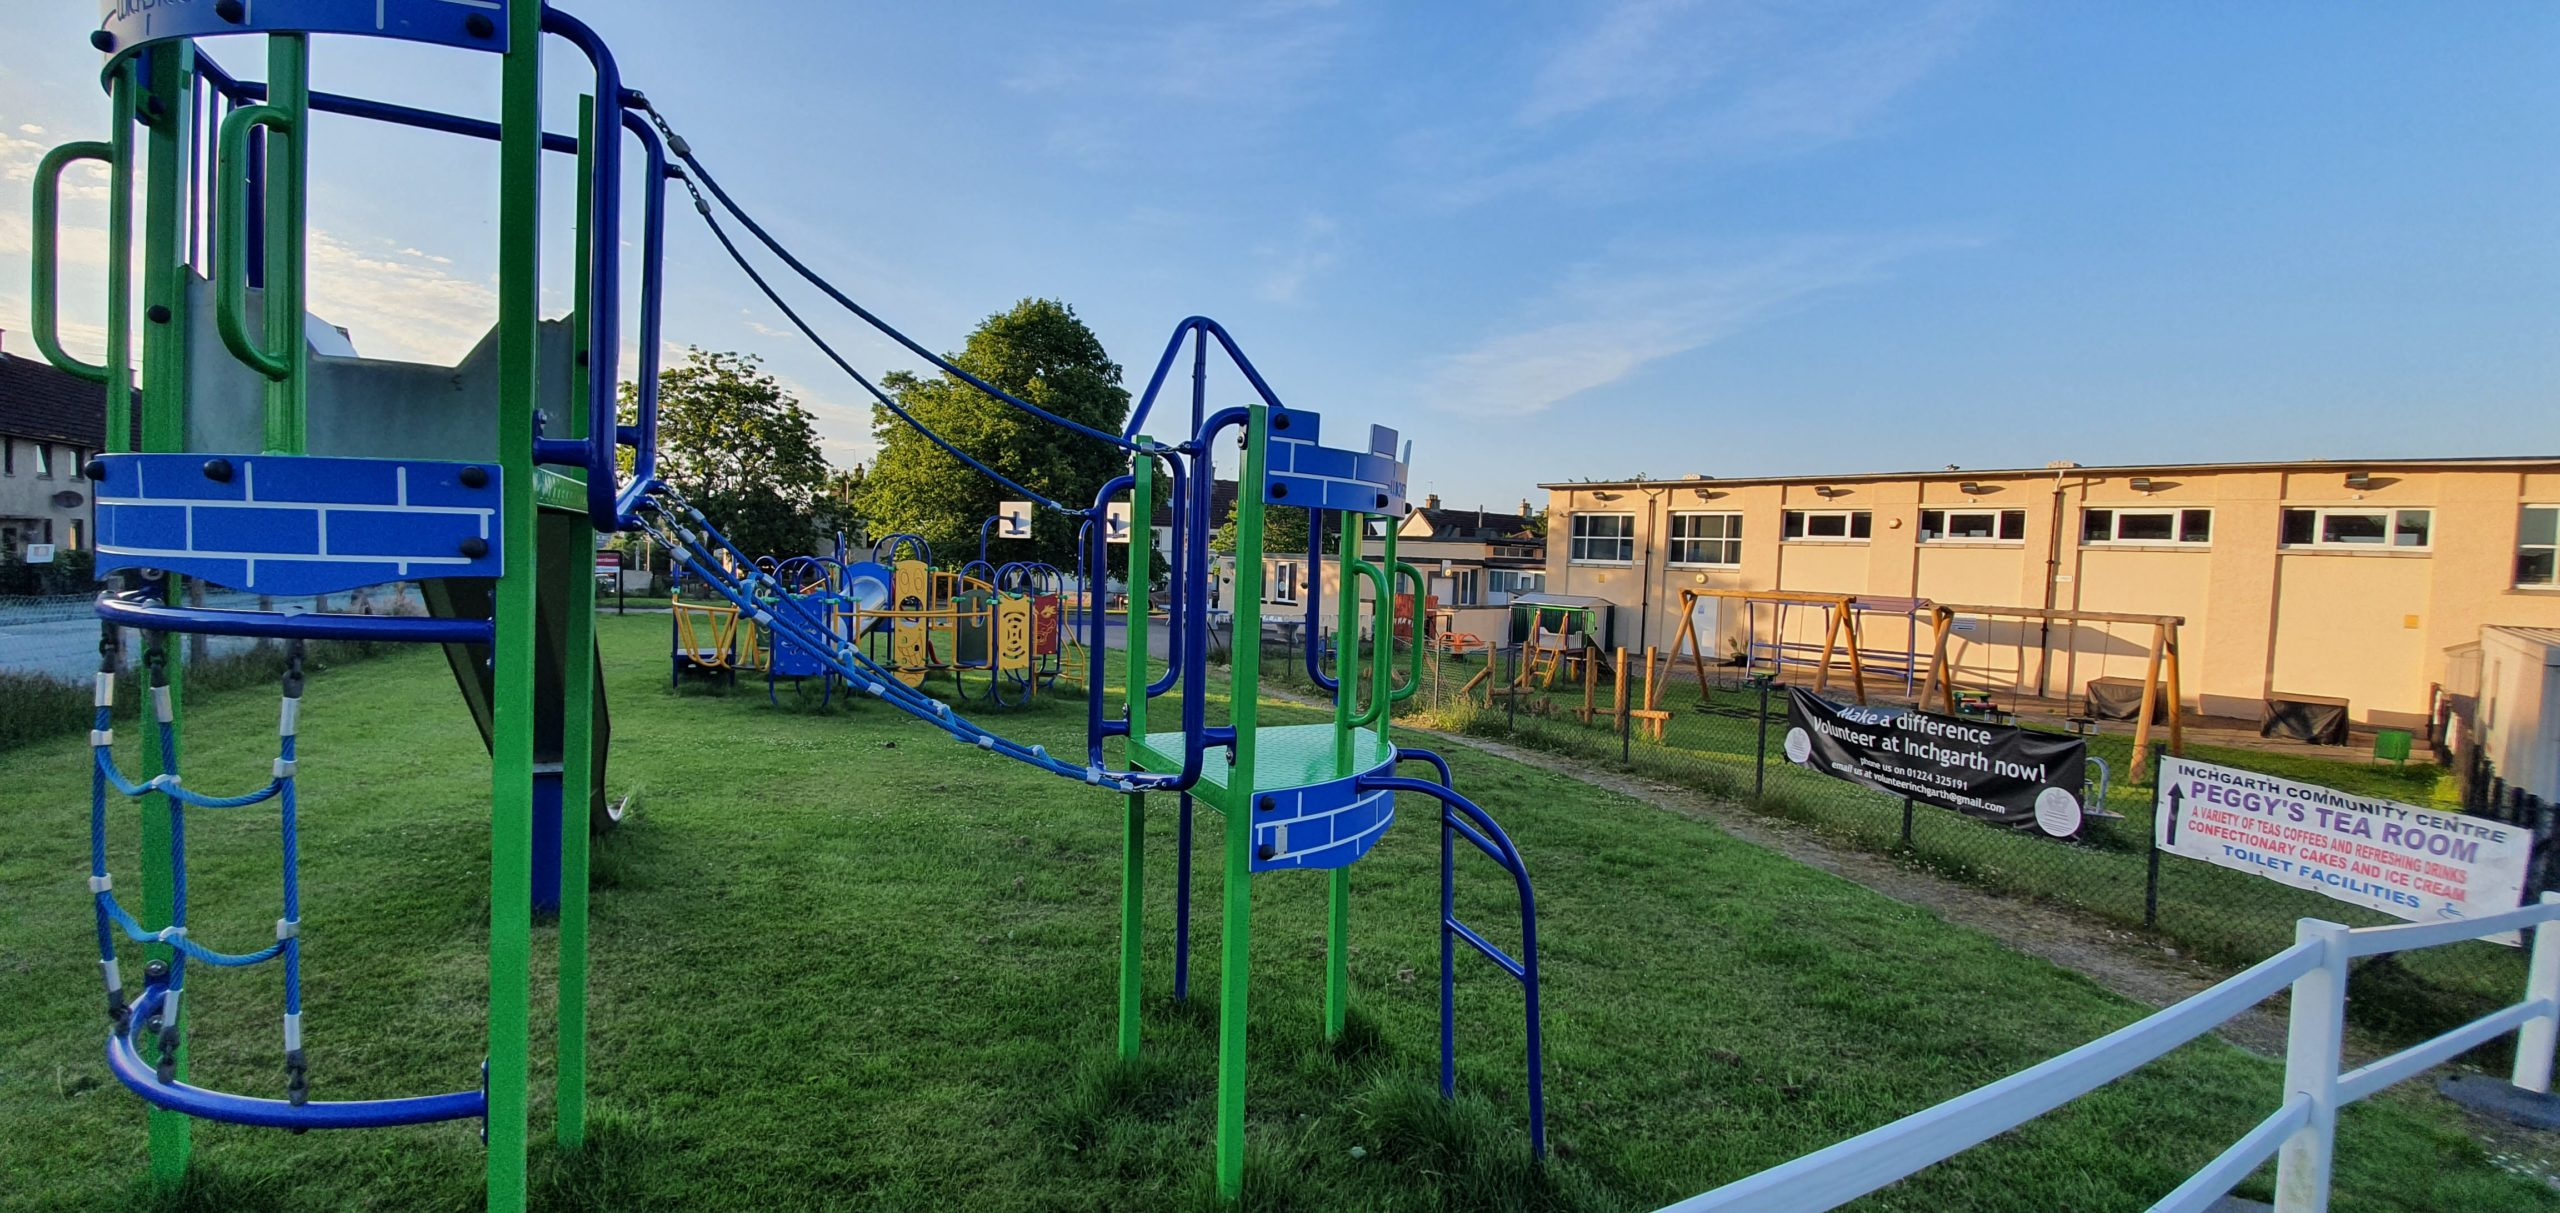 The Inchgarth play park will open on Monday